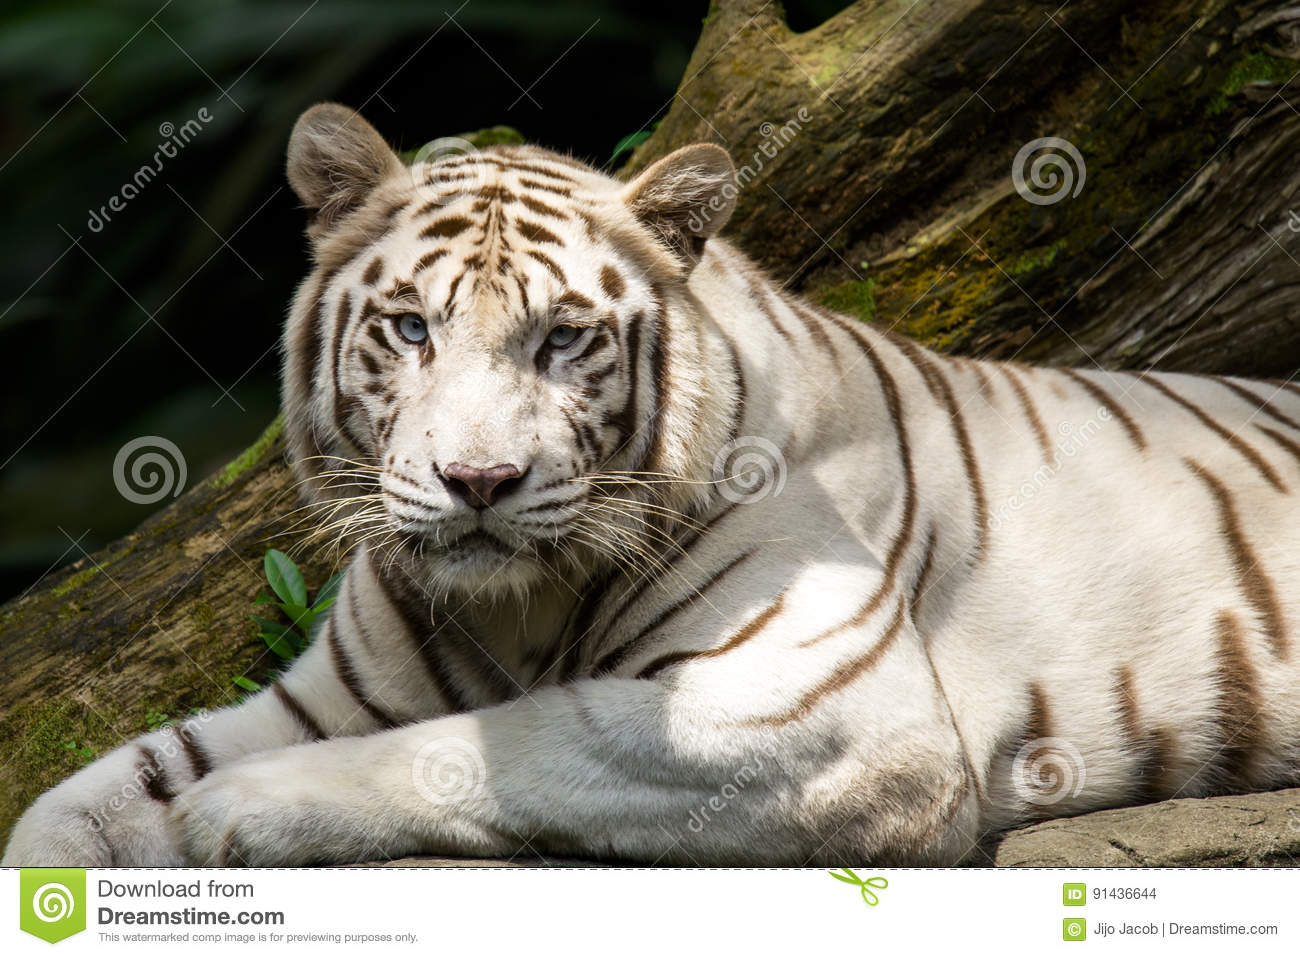 white tiger stock photo image of relaxingtiger, tigertigerblackwhite tiger,bengal white tiger,bleached tiger,tiger,black and white tiger,white tiger face,lying tiger,tiger face,tiger relaxing,tiger ready for attack